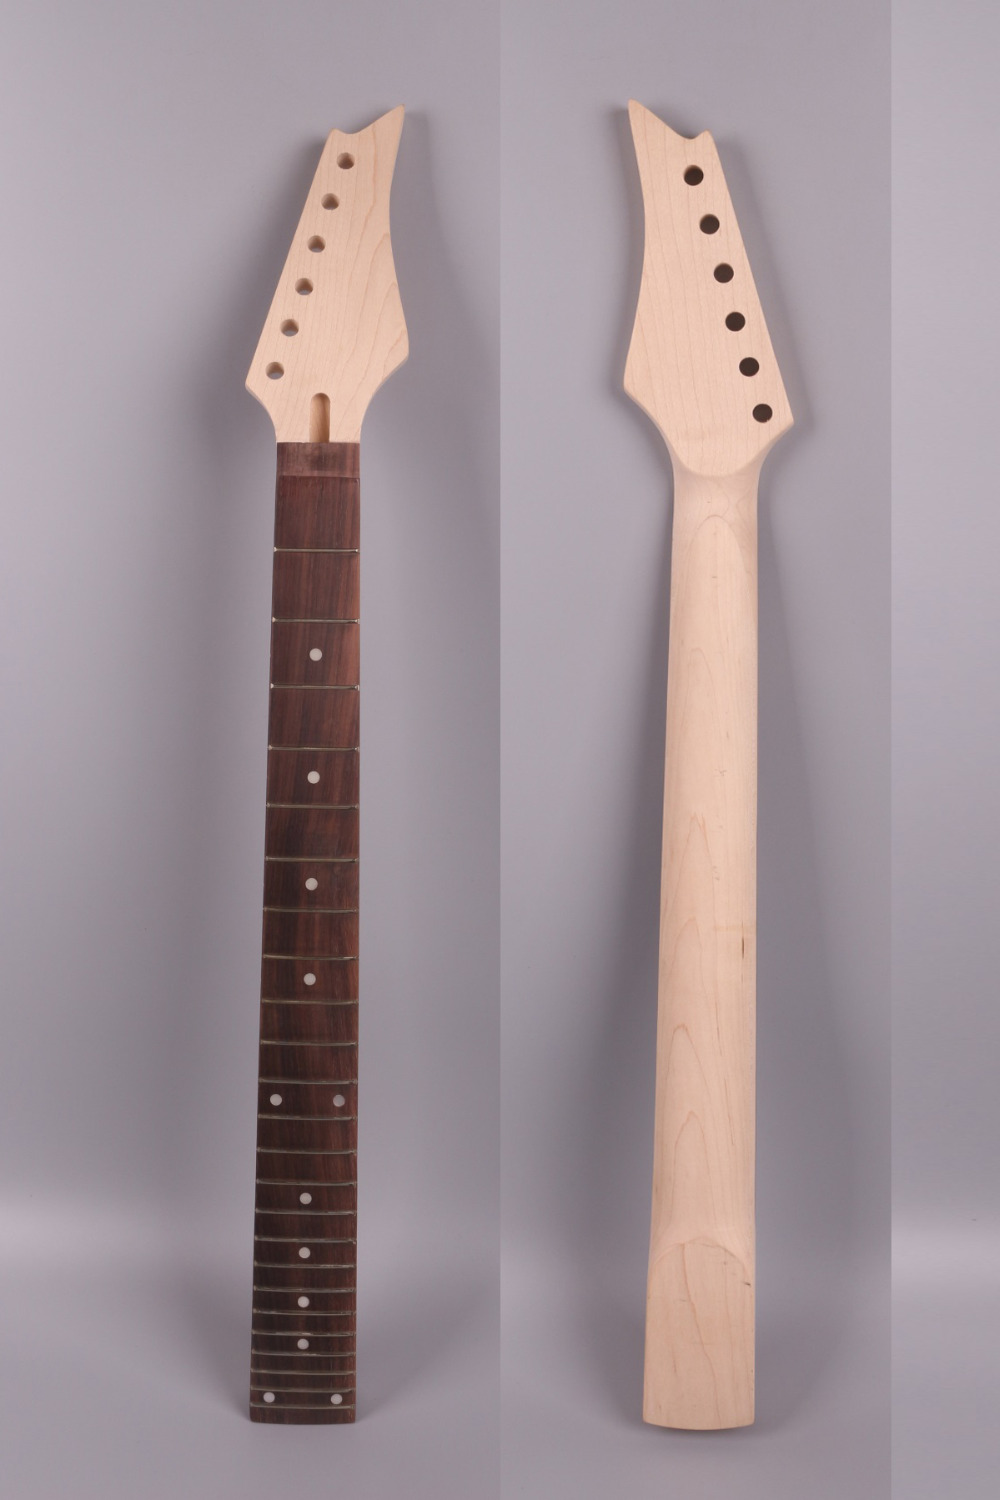 Electric guitar neck 24 fret 25.5 inch solid wood Fretboard tree inlaid Rosewood Fretboard Bolt On Canada Maple 022 wholesale cnbald 6 string guitar fdr str electric guitar rosewood fretboard 3 pickups in cream 130516